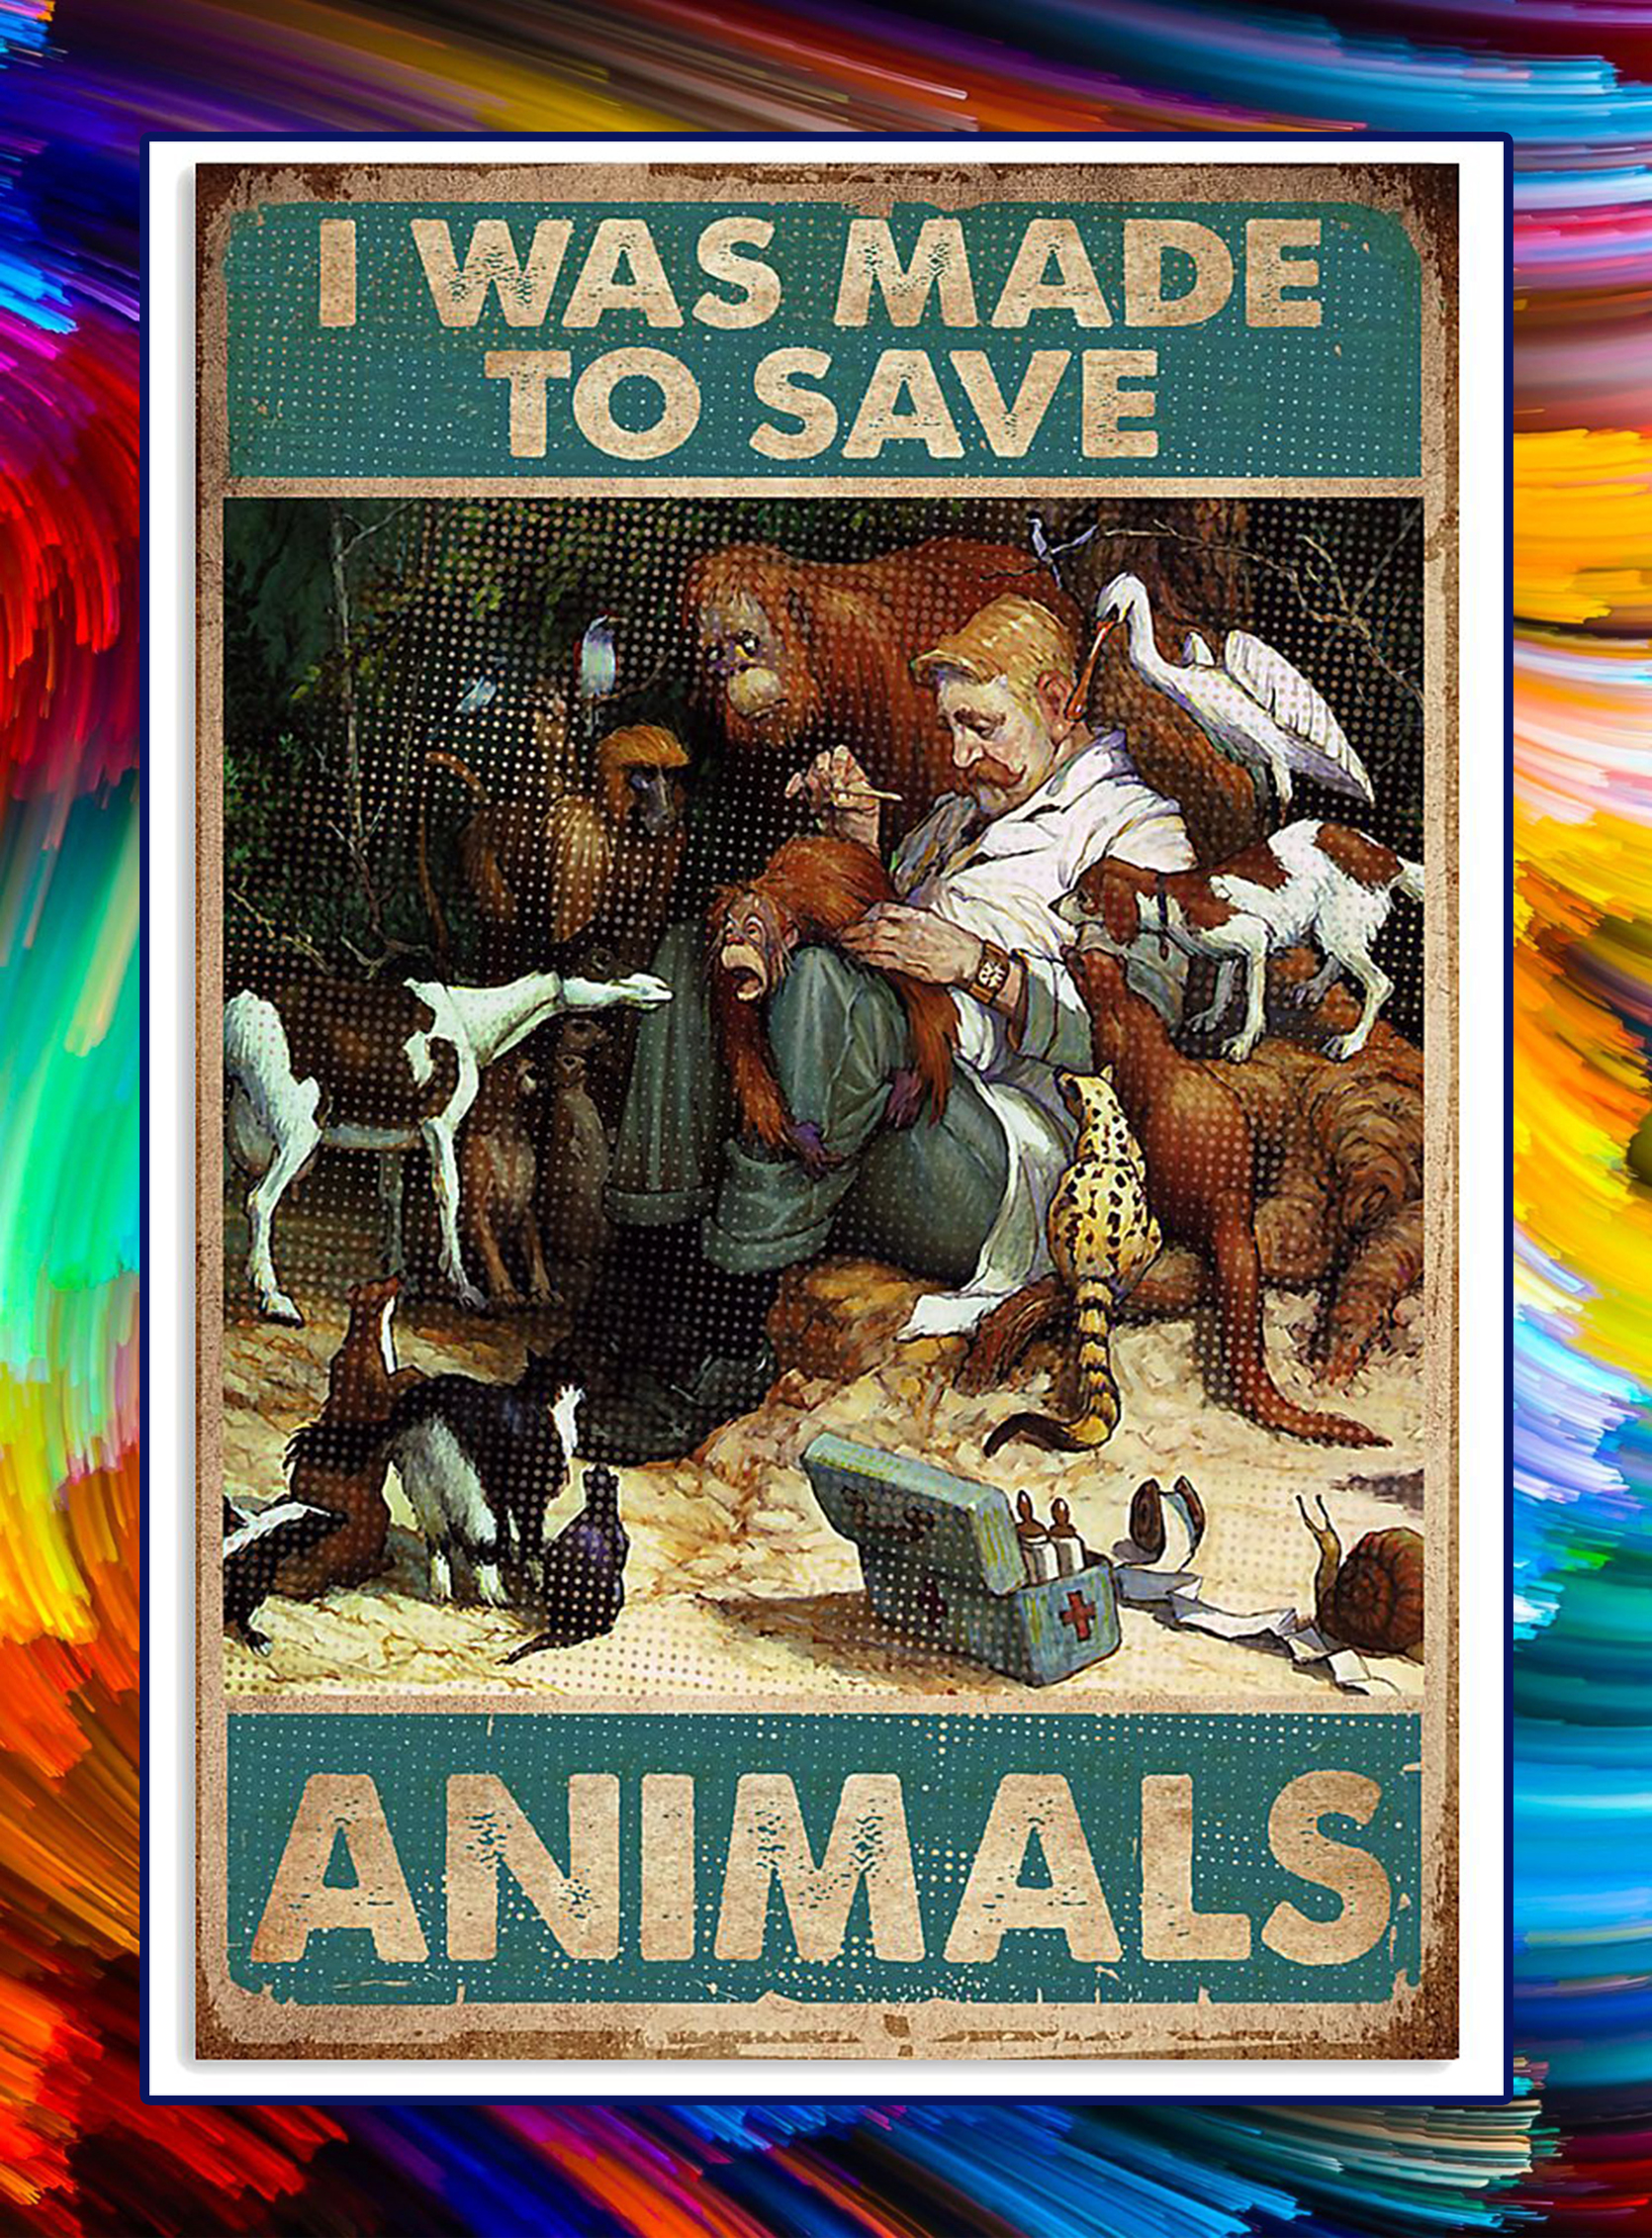 Veterinarian i was made to save animals posterr - A3